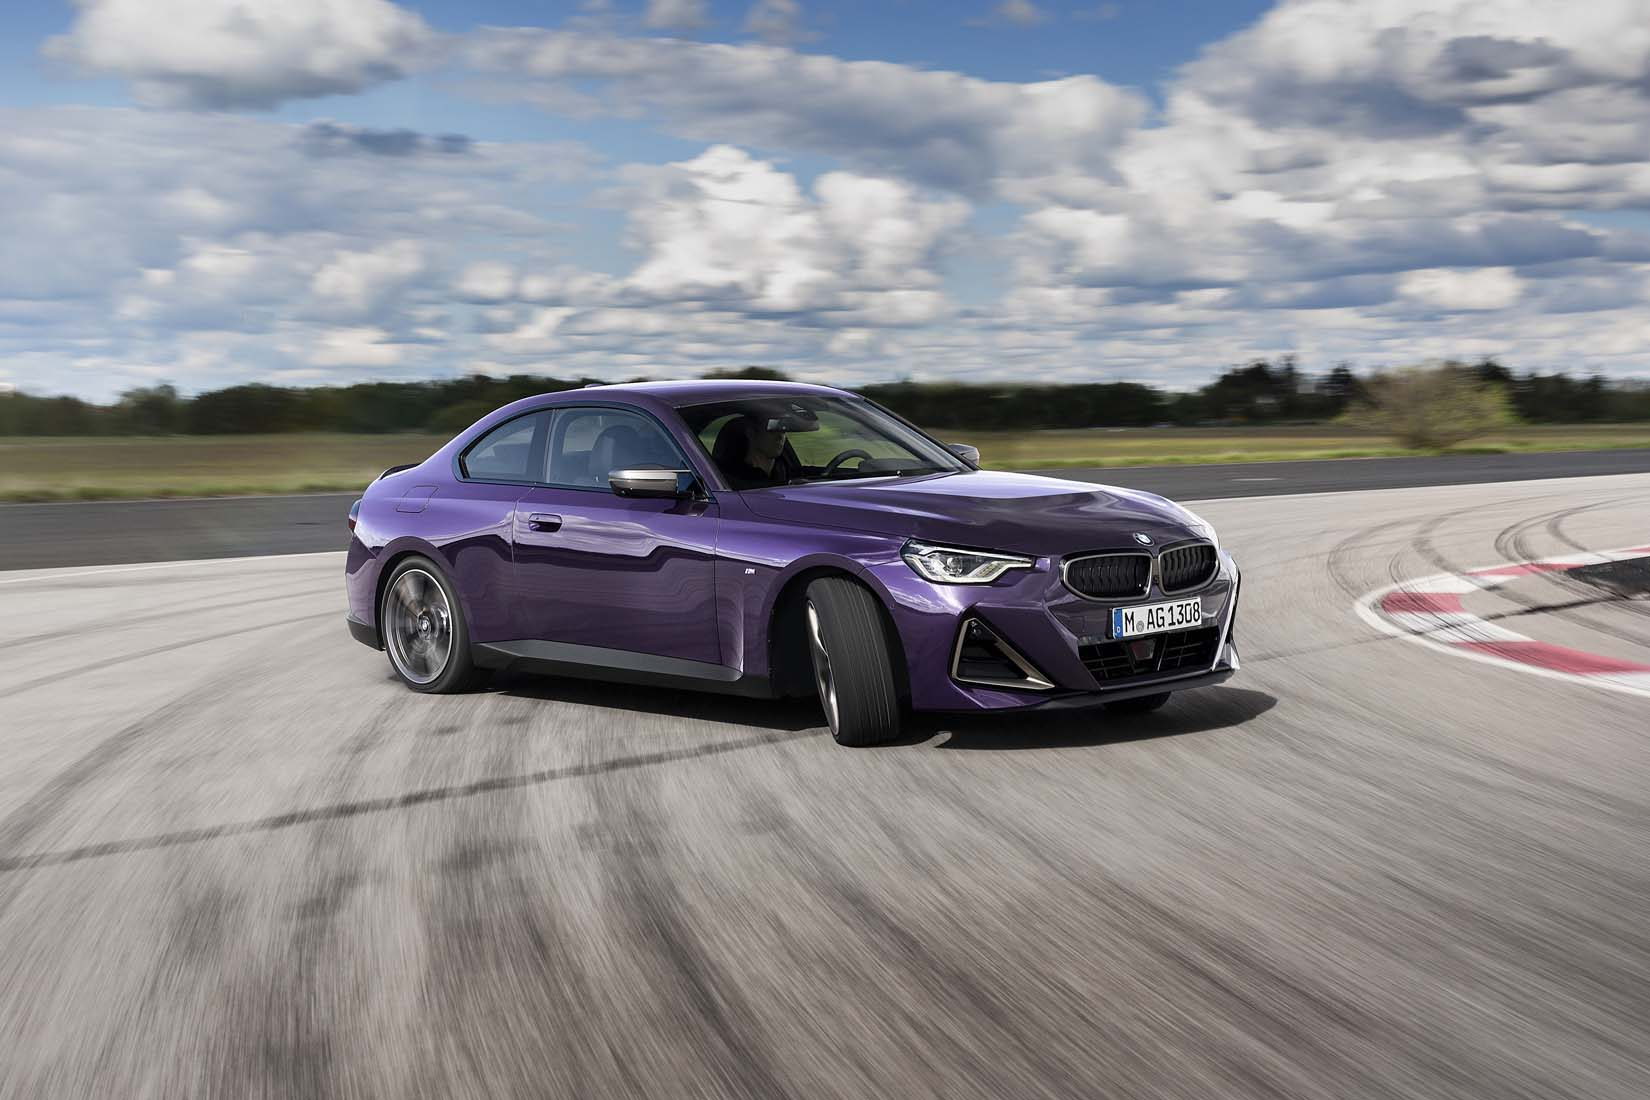 BMW 2 Series Coupe on its way (hopefully)